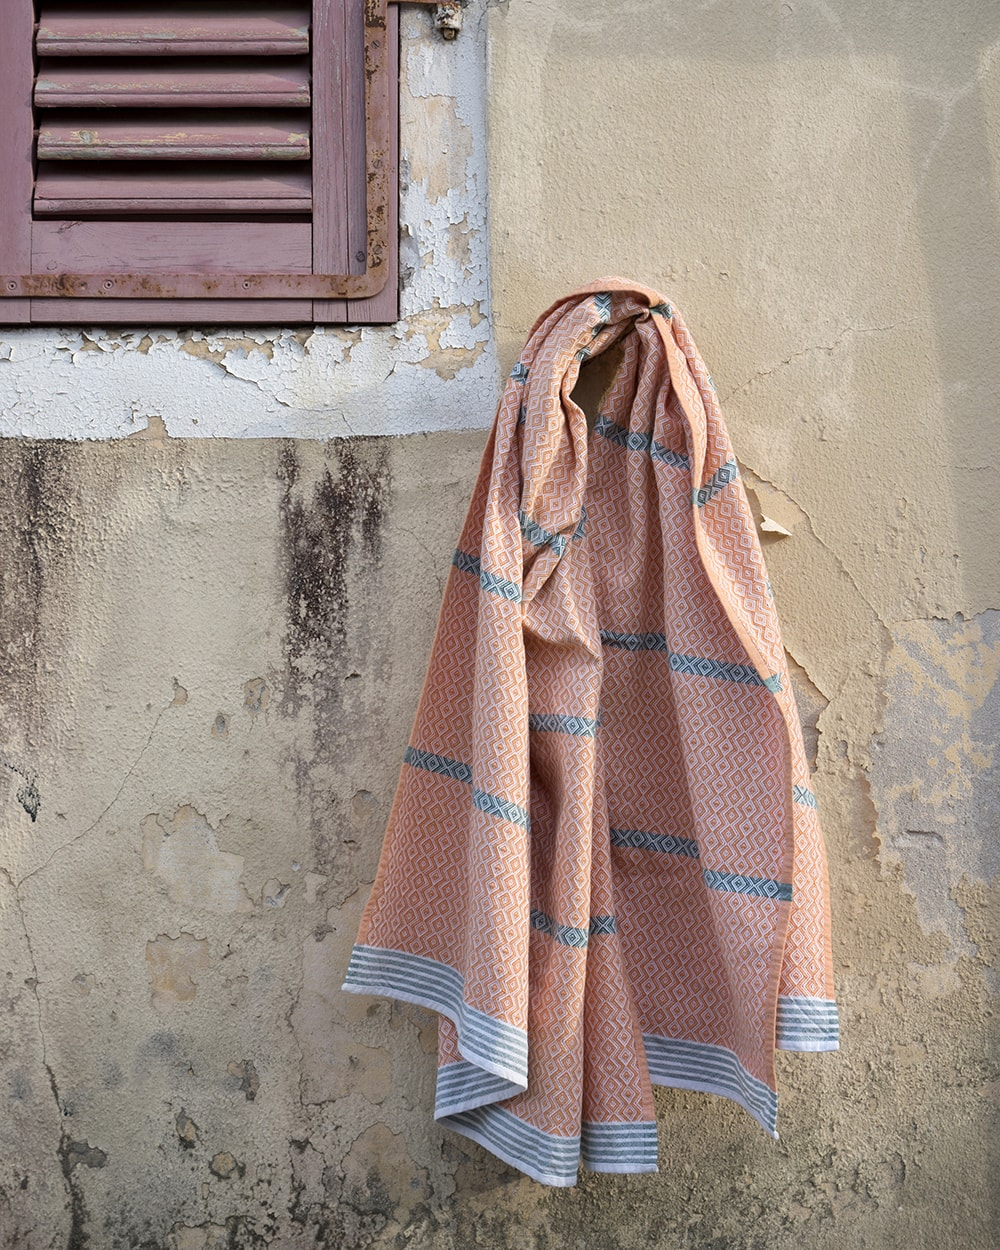 Mungo Itawuli in African sunset. A 100% cotton towel woven at the Mungo Mill in Plettenberg Bay, South Africa